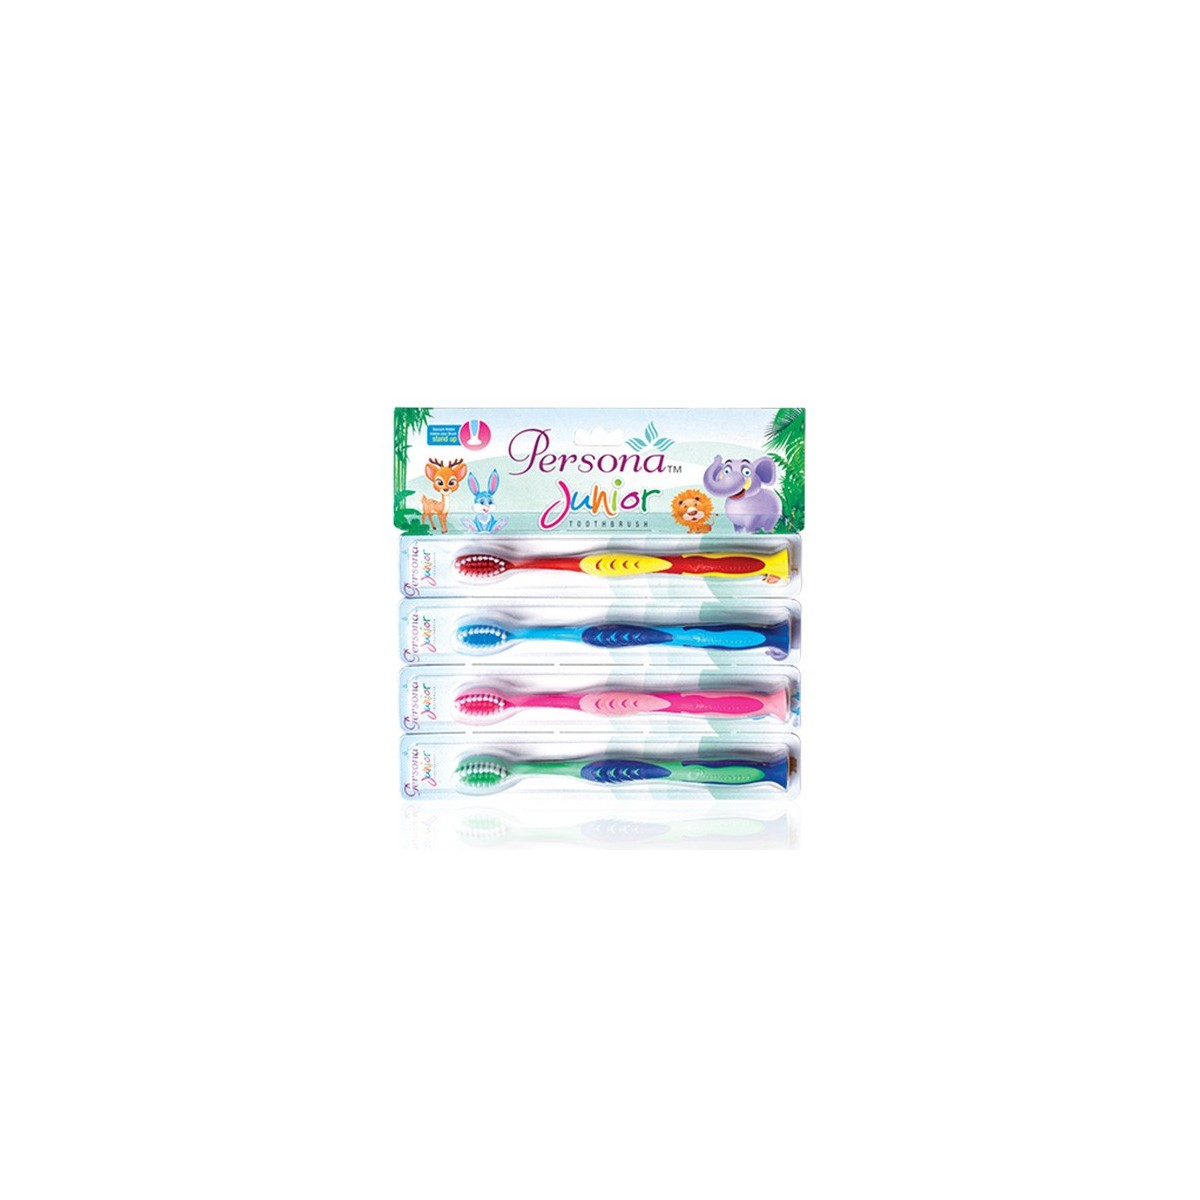 Amway Persona Junior Toothbrush (Pack of 4)